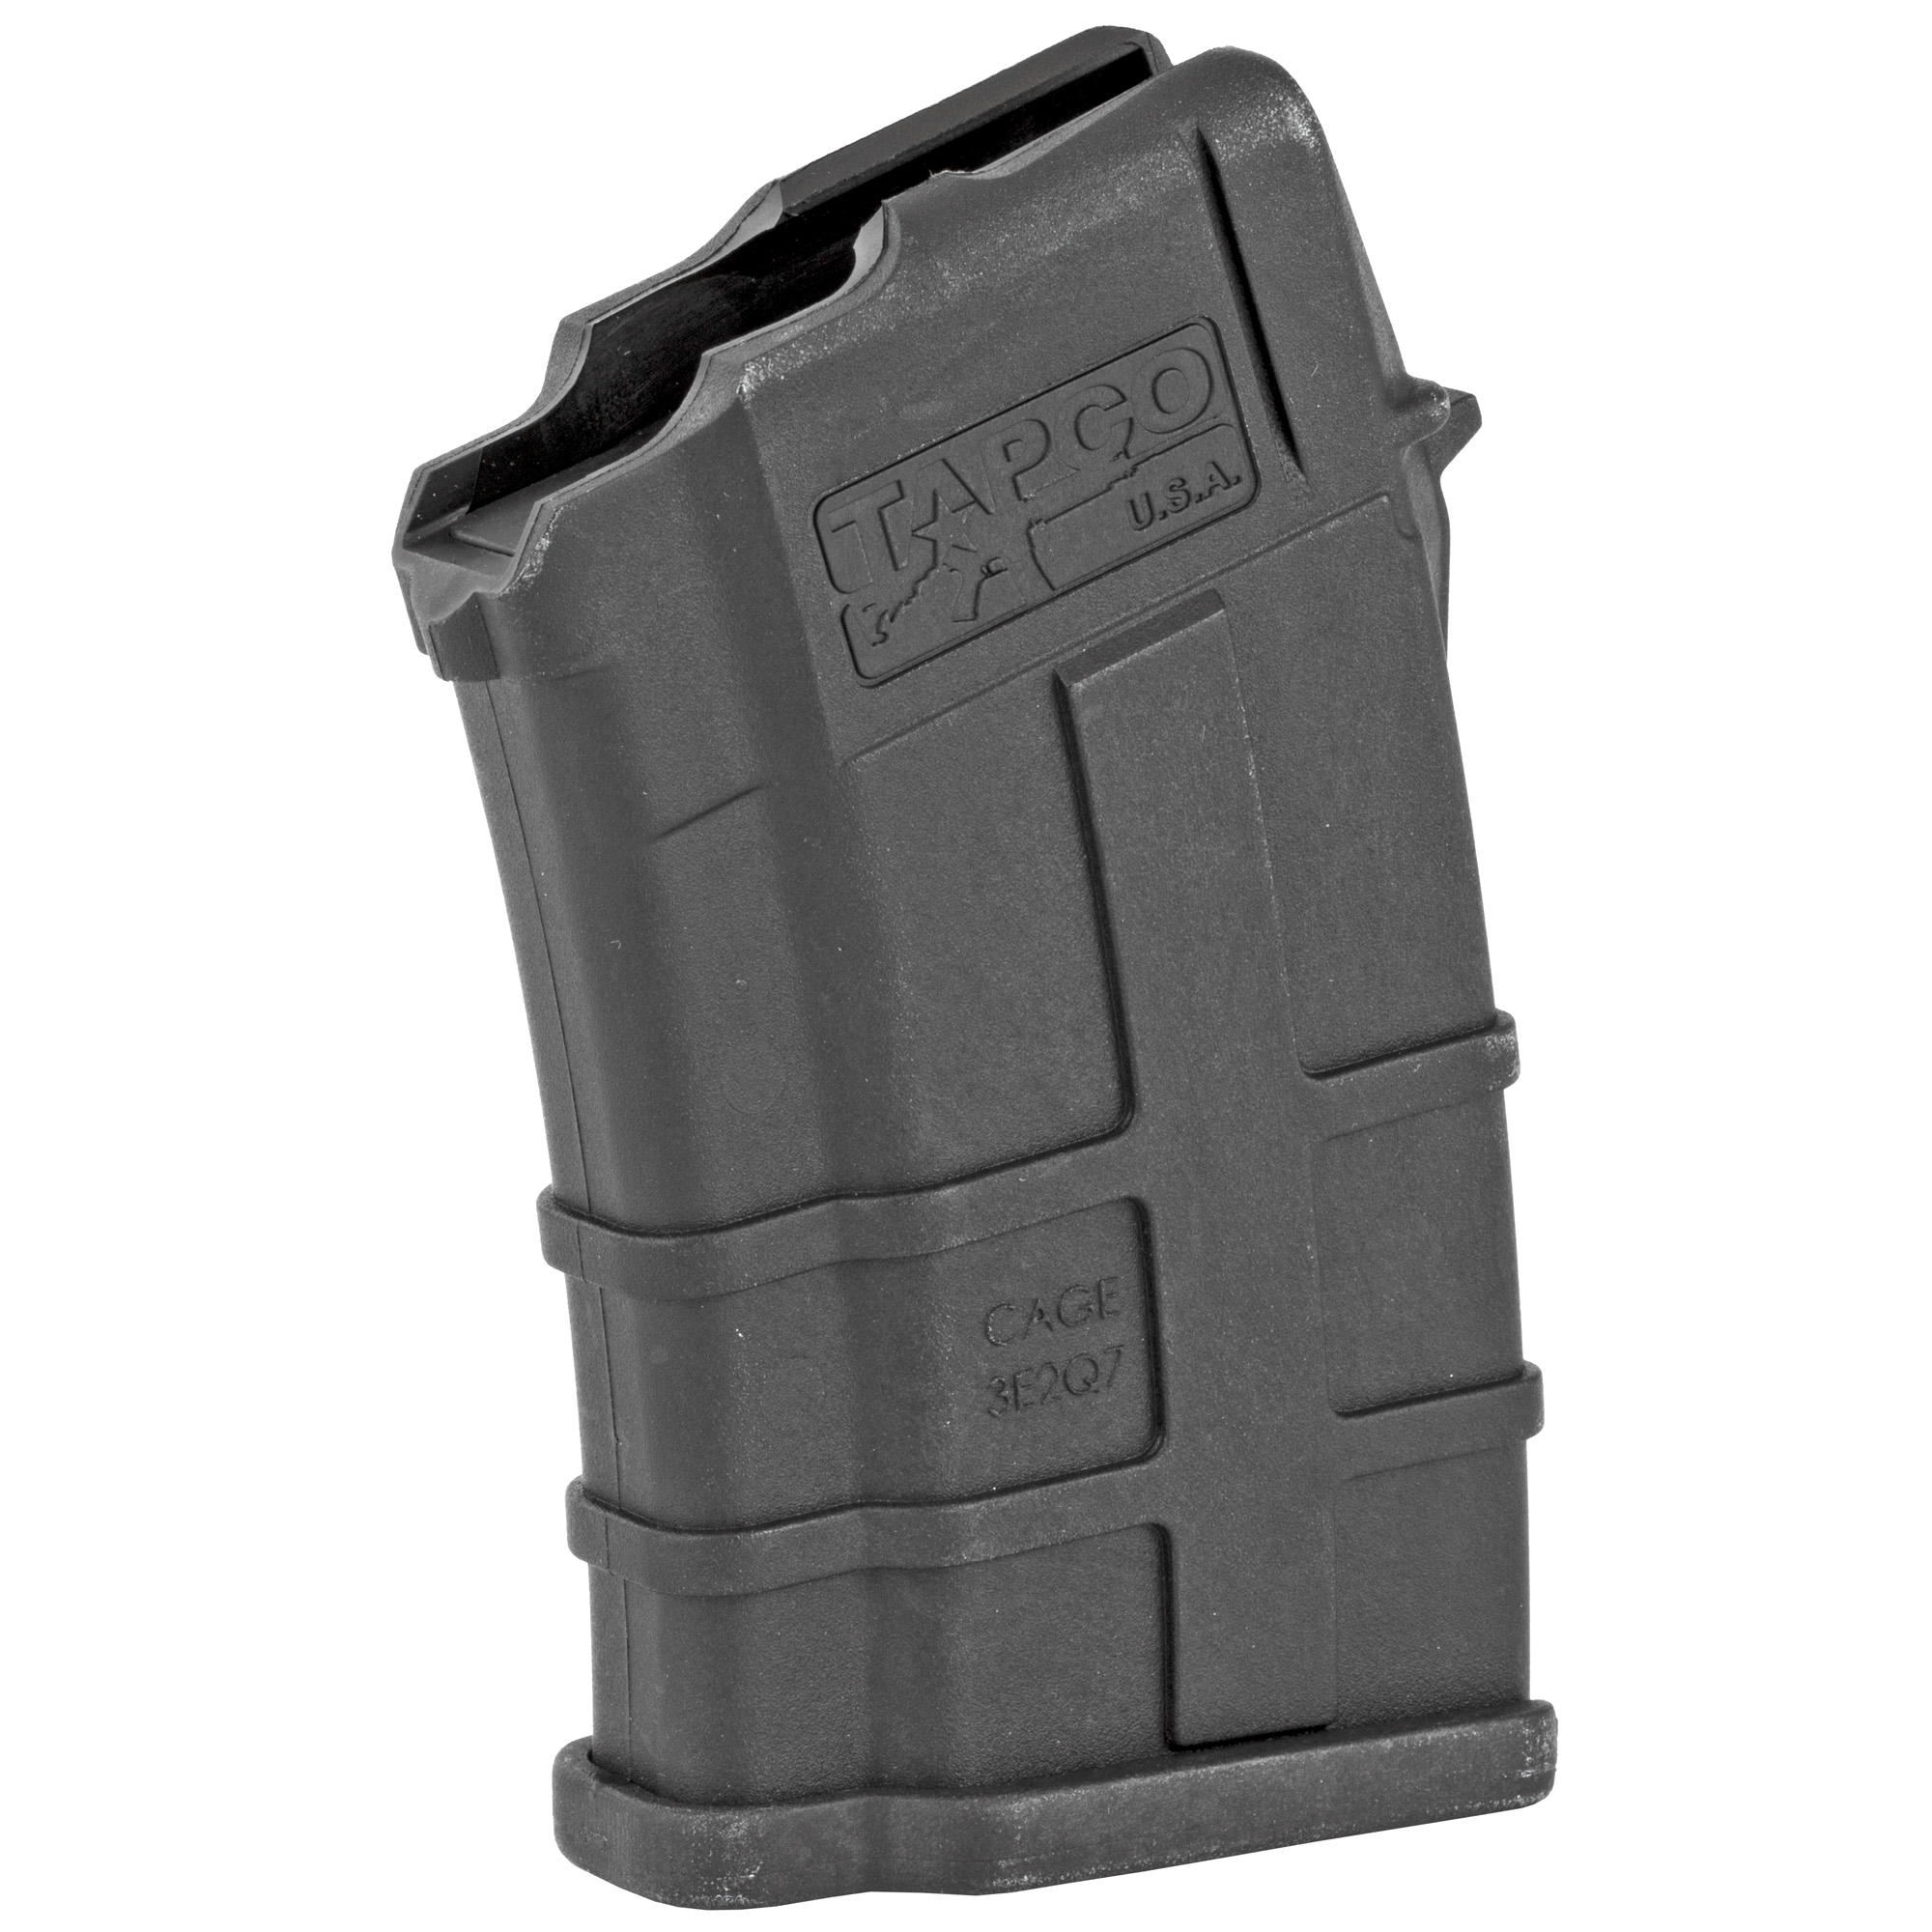 Can't find a rugged and reliable low capacity AK mag? The Tapco 10rd AK-74 Magazine is your answer. The reinforced composite material prevents corrosion while the heavy duty spring and anti-tilt follower ensure that every round will feed perfectly. Fits the AK-74 using 5.45X39mm ammunition. Not to mention that it counts as 3 U.S. 922r compliant parts.